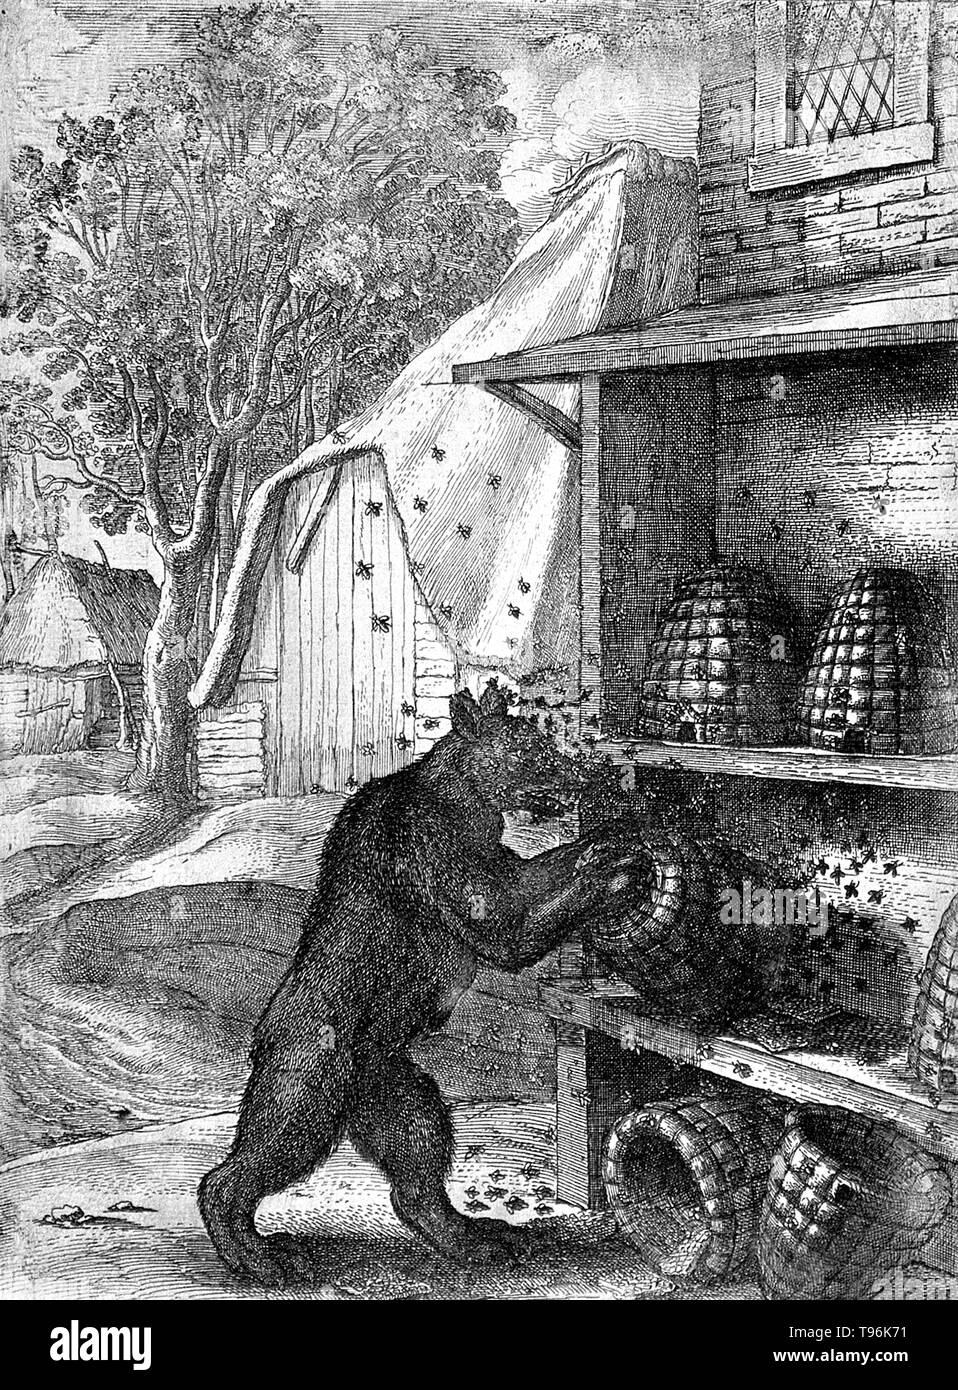 A bear has overturned two hives and is trying to prize out honey from a third while being attacked by bees. Illustration of a fable by Aesop. A beehive is an enclosed structure man-made in which some honey bee species of the subgenus Apis live and raise their young. Several species of Apis live in colonies, but for honey production the western honey bee (Apis mellifera) and the eastern honey bee (Apis cerana) are the main species kept in hives. - Stock Image